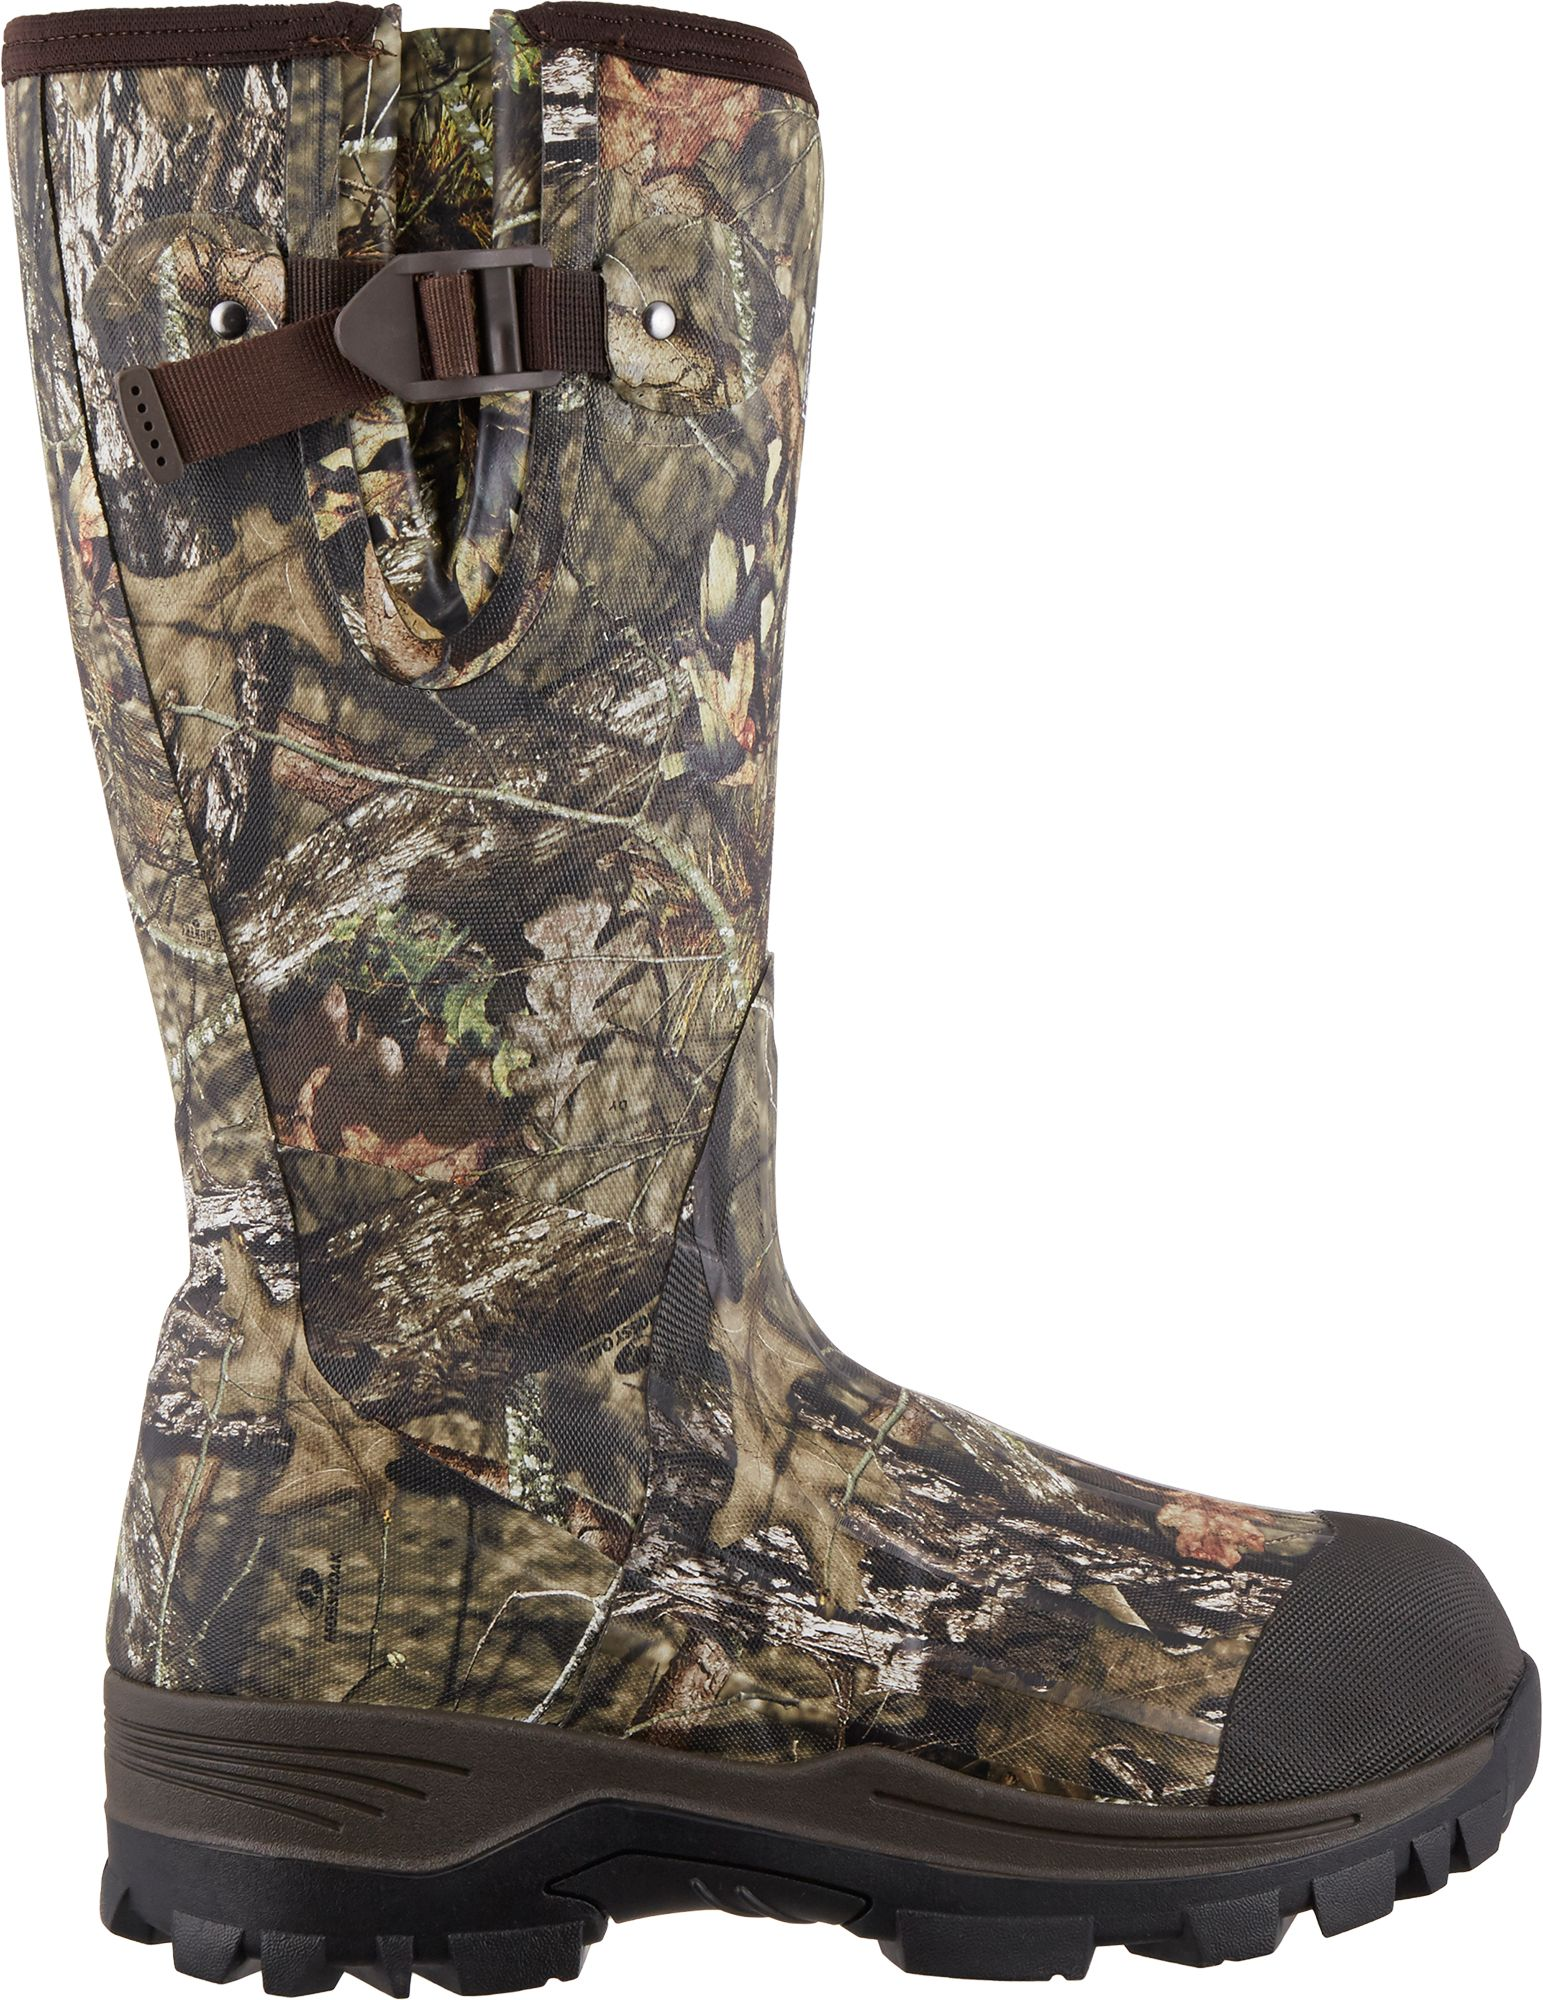 Field & Stream Men's Swamptracker Realtree Xtra Waterproof 1000g Rubber Hunting Boots, Mossy Oak Brk Up Country thumbnail